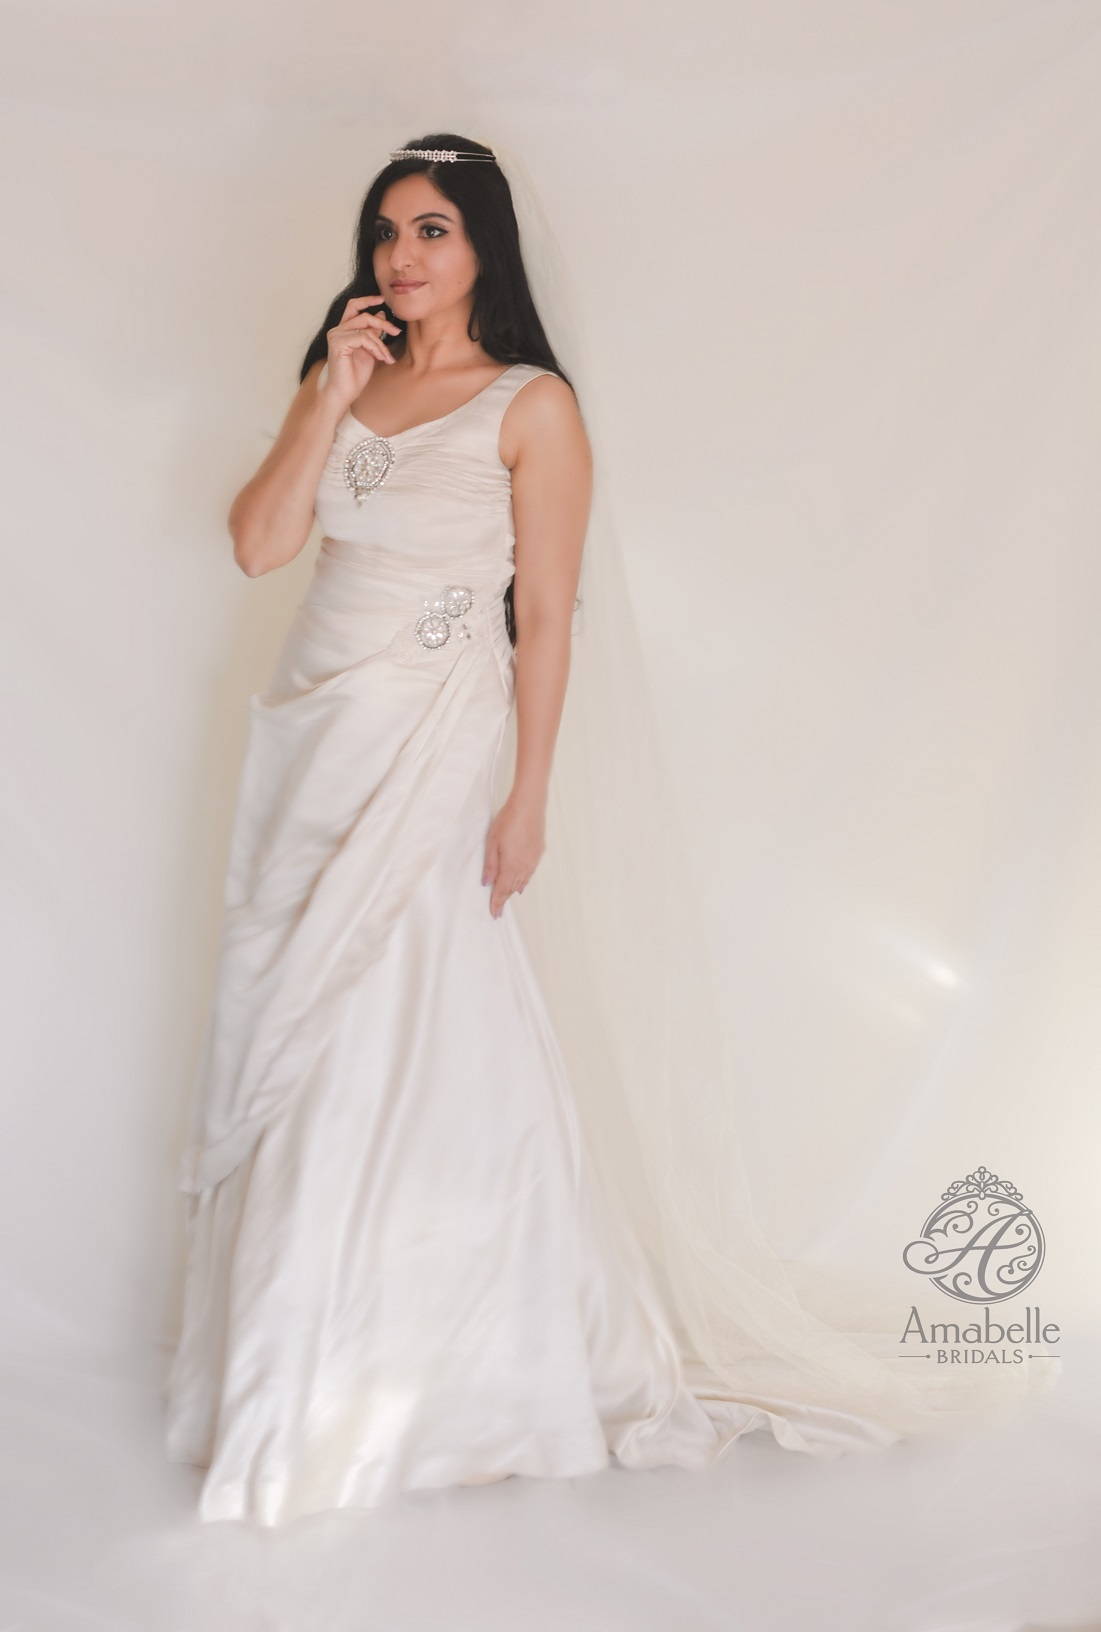 Ivory Duchess satin draped wedding gown